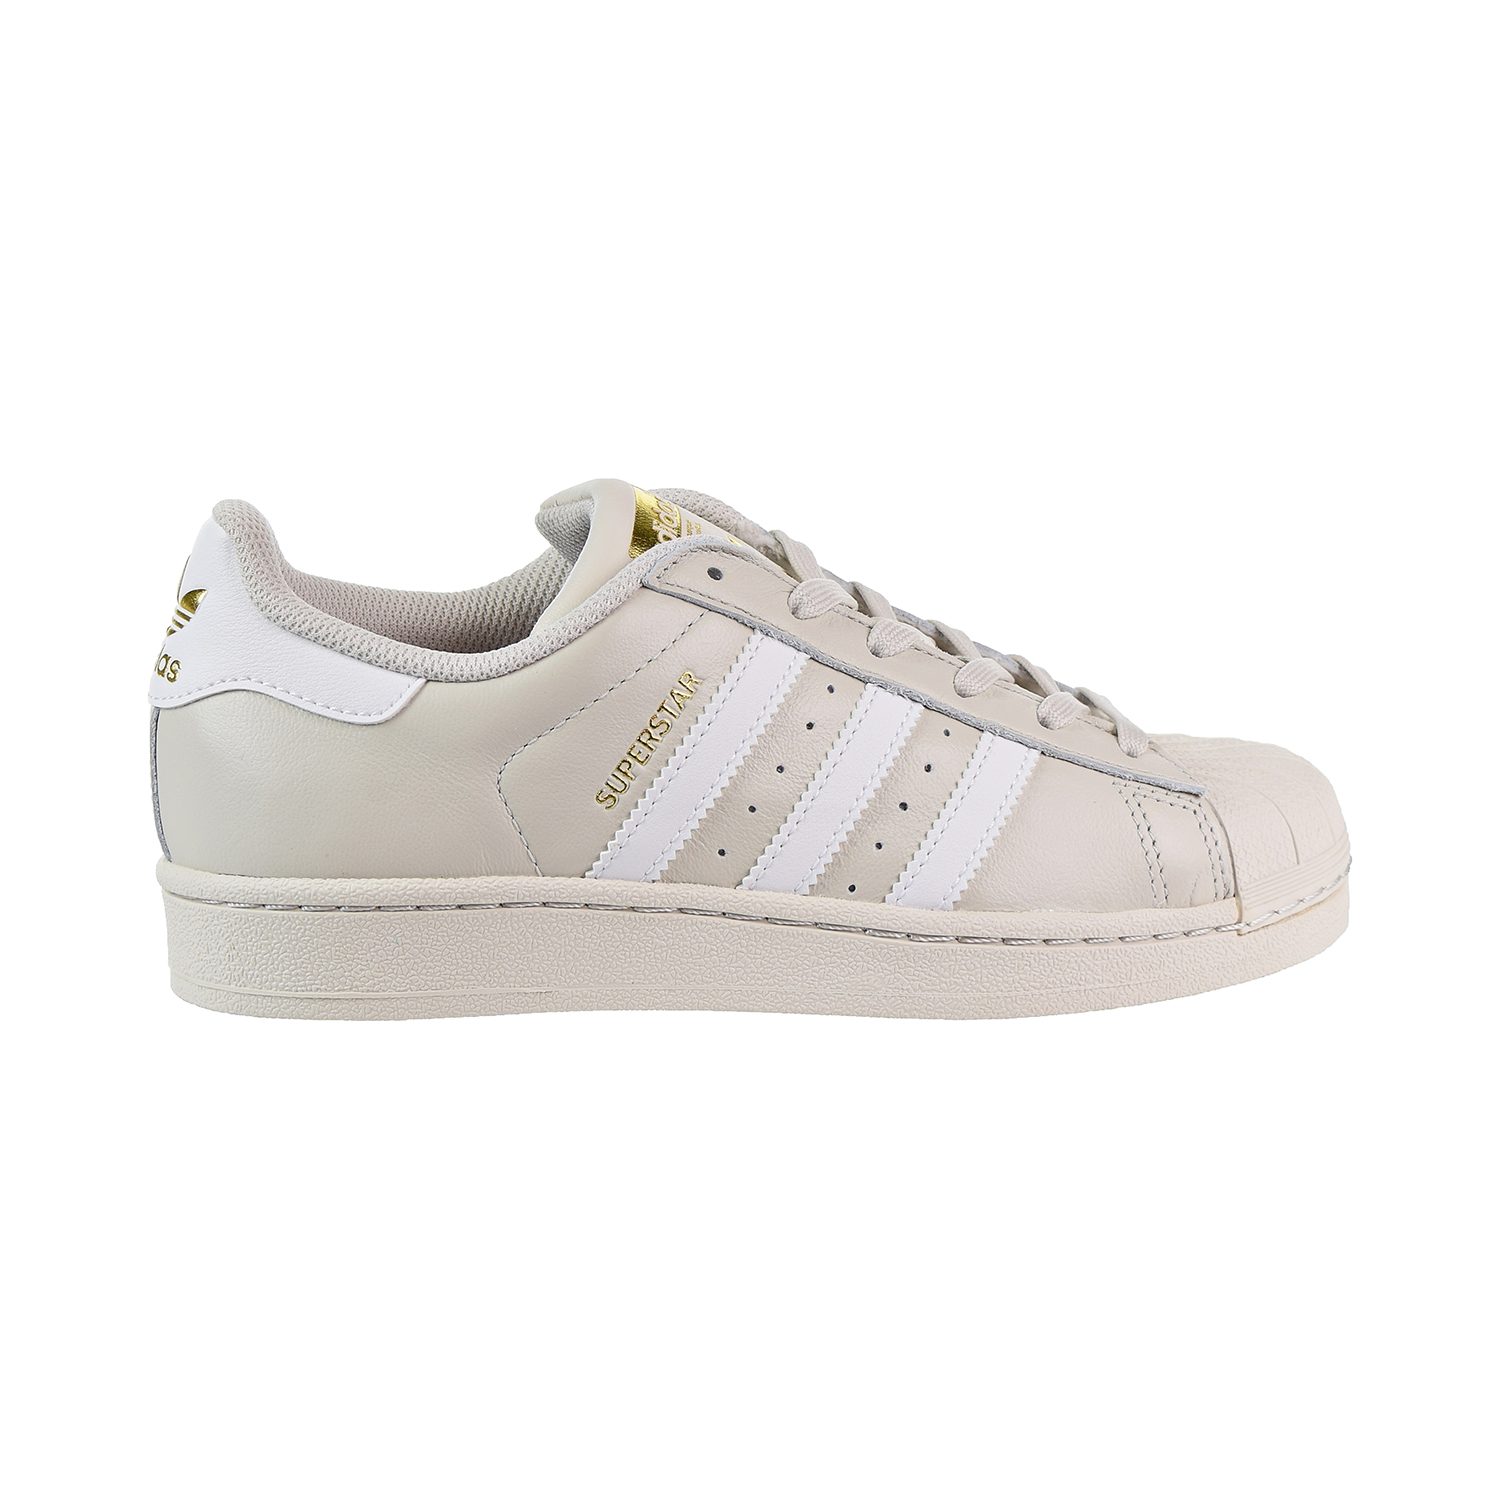 size 40 1953e 09d63 Details about Adidas Superstar Big Kids  Shoes Talc White Gold CG2943